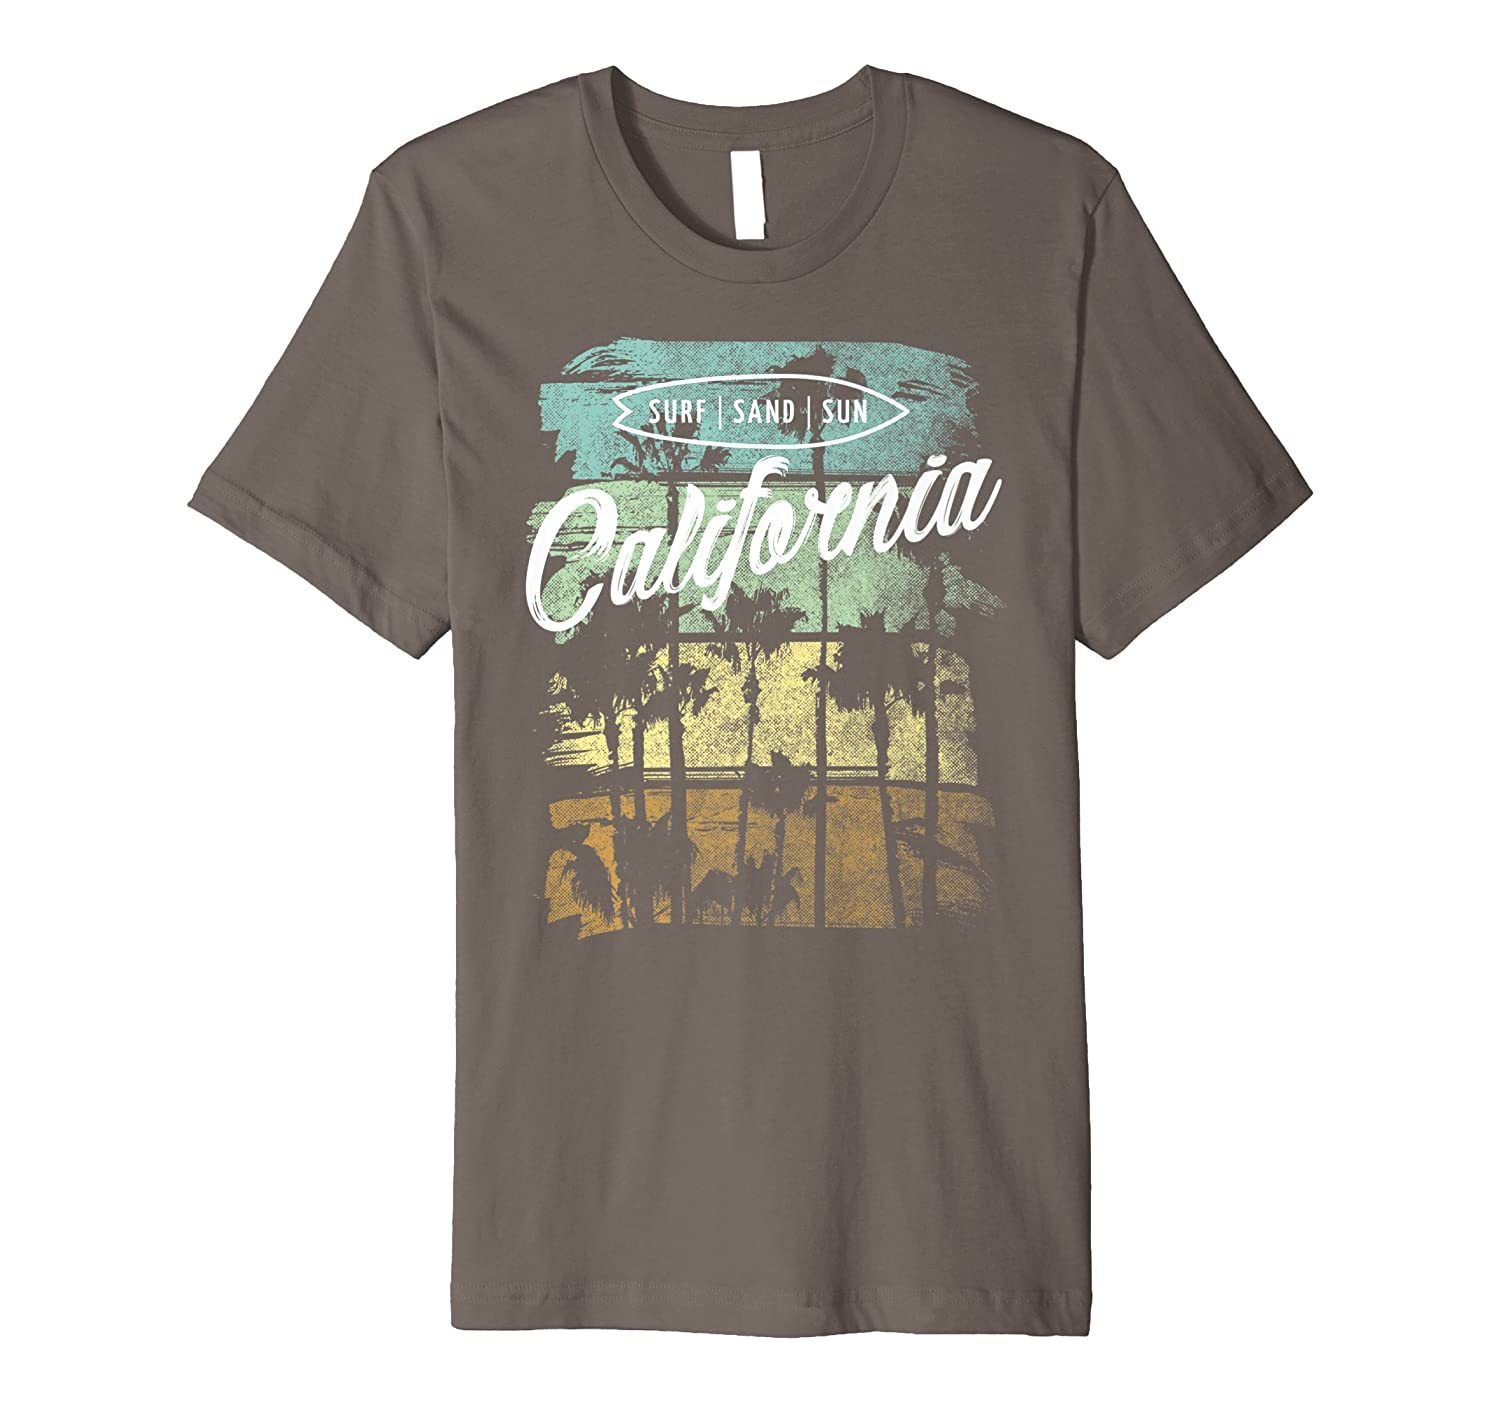 53cd6a0f4 Top8: Vintage California Shirt Surf Sand Sun Retro Beach T-Shirt